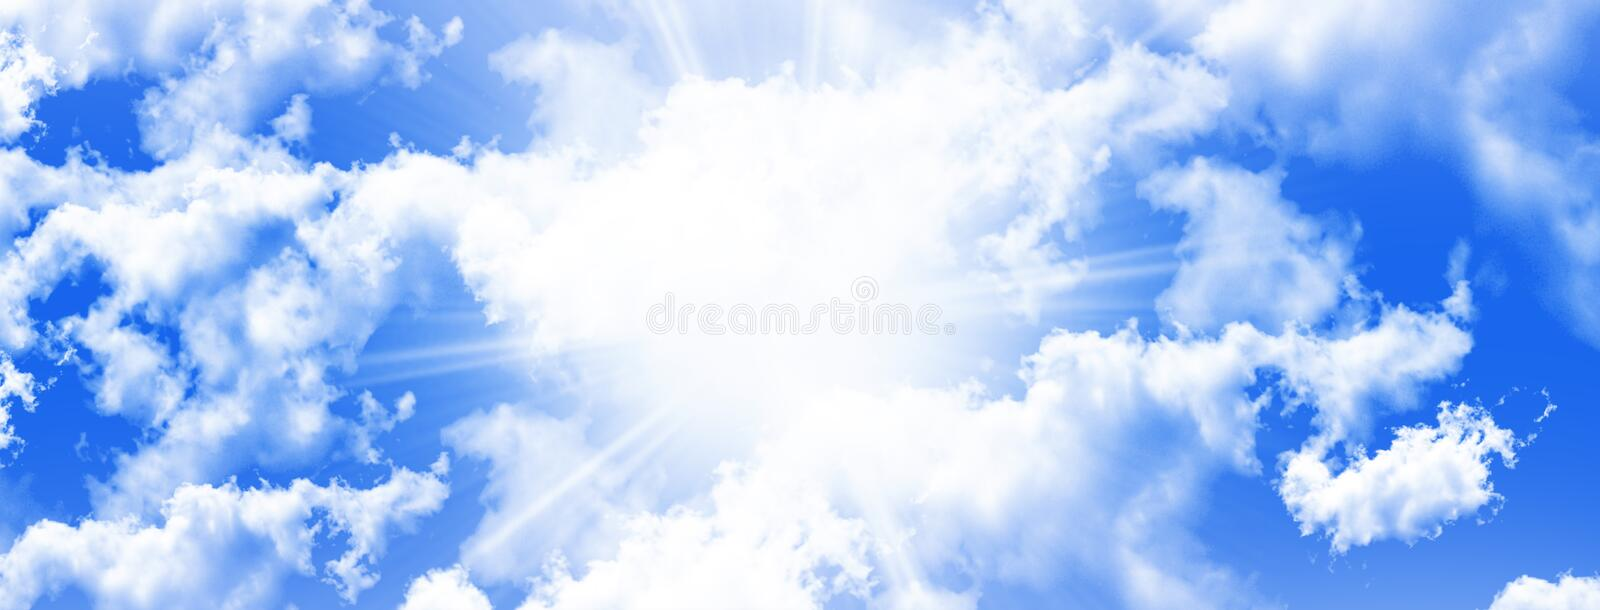 White Fluffy Clouds in the blue sky illustration stock photos